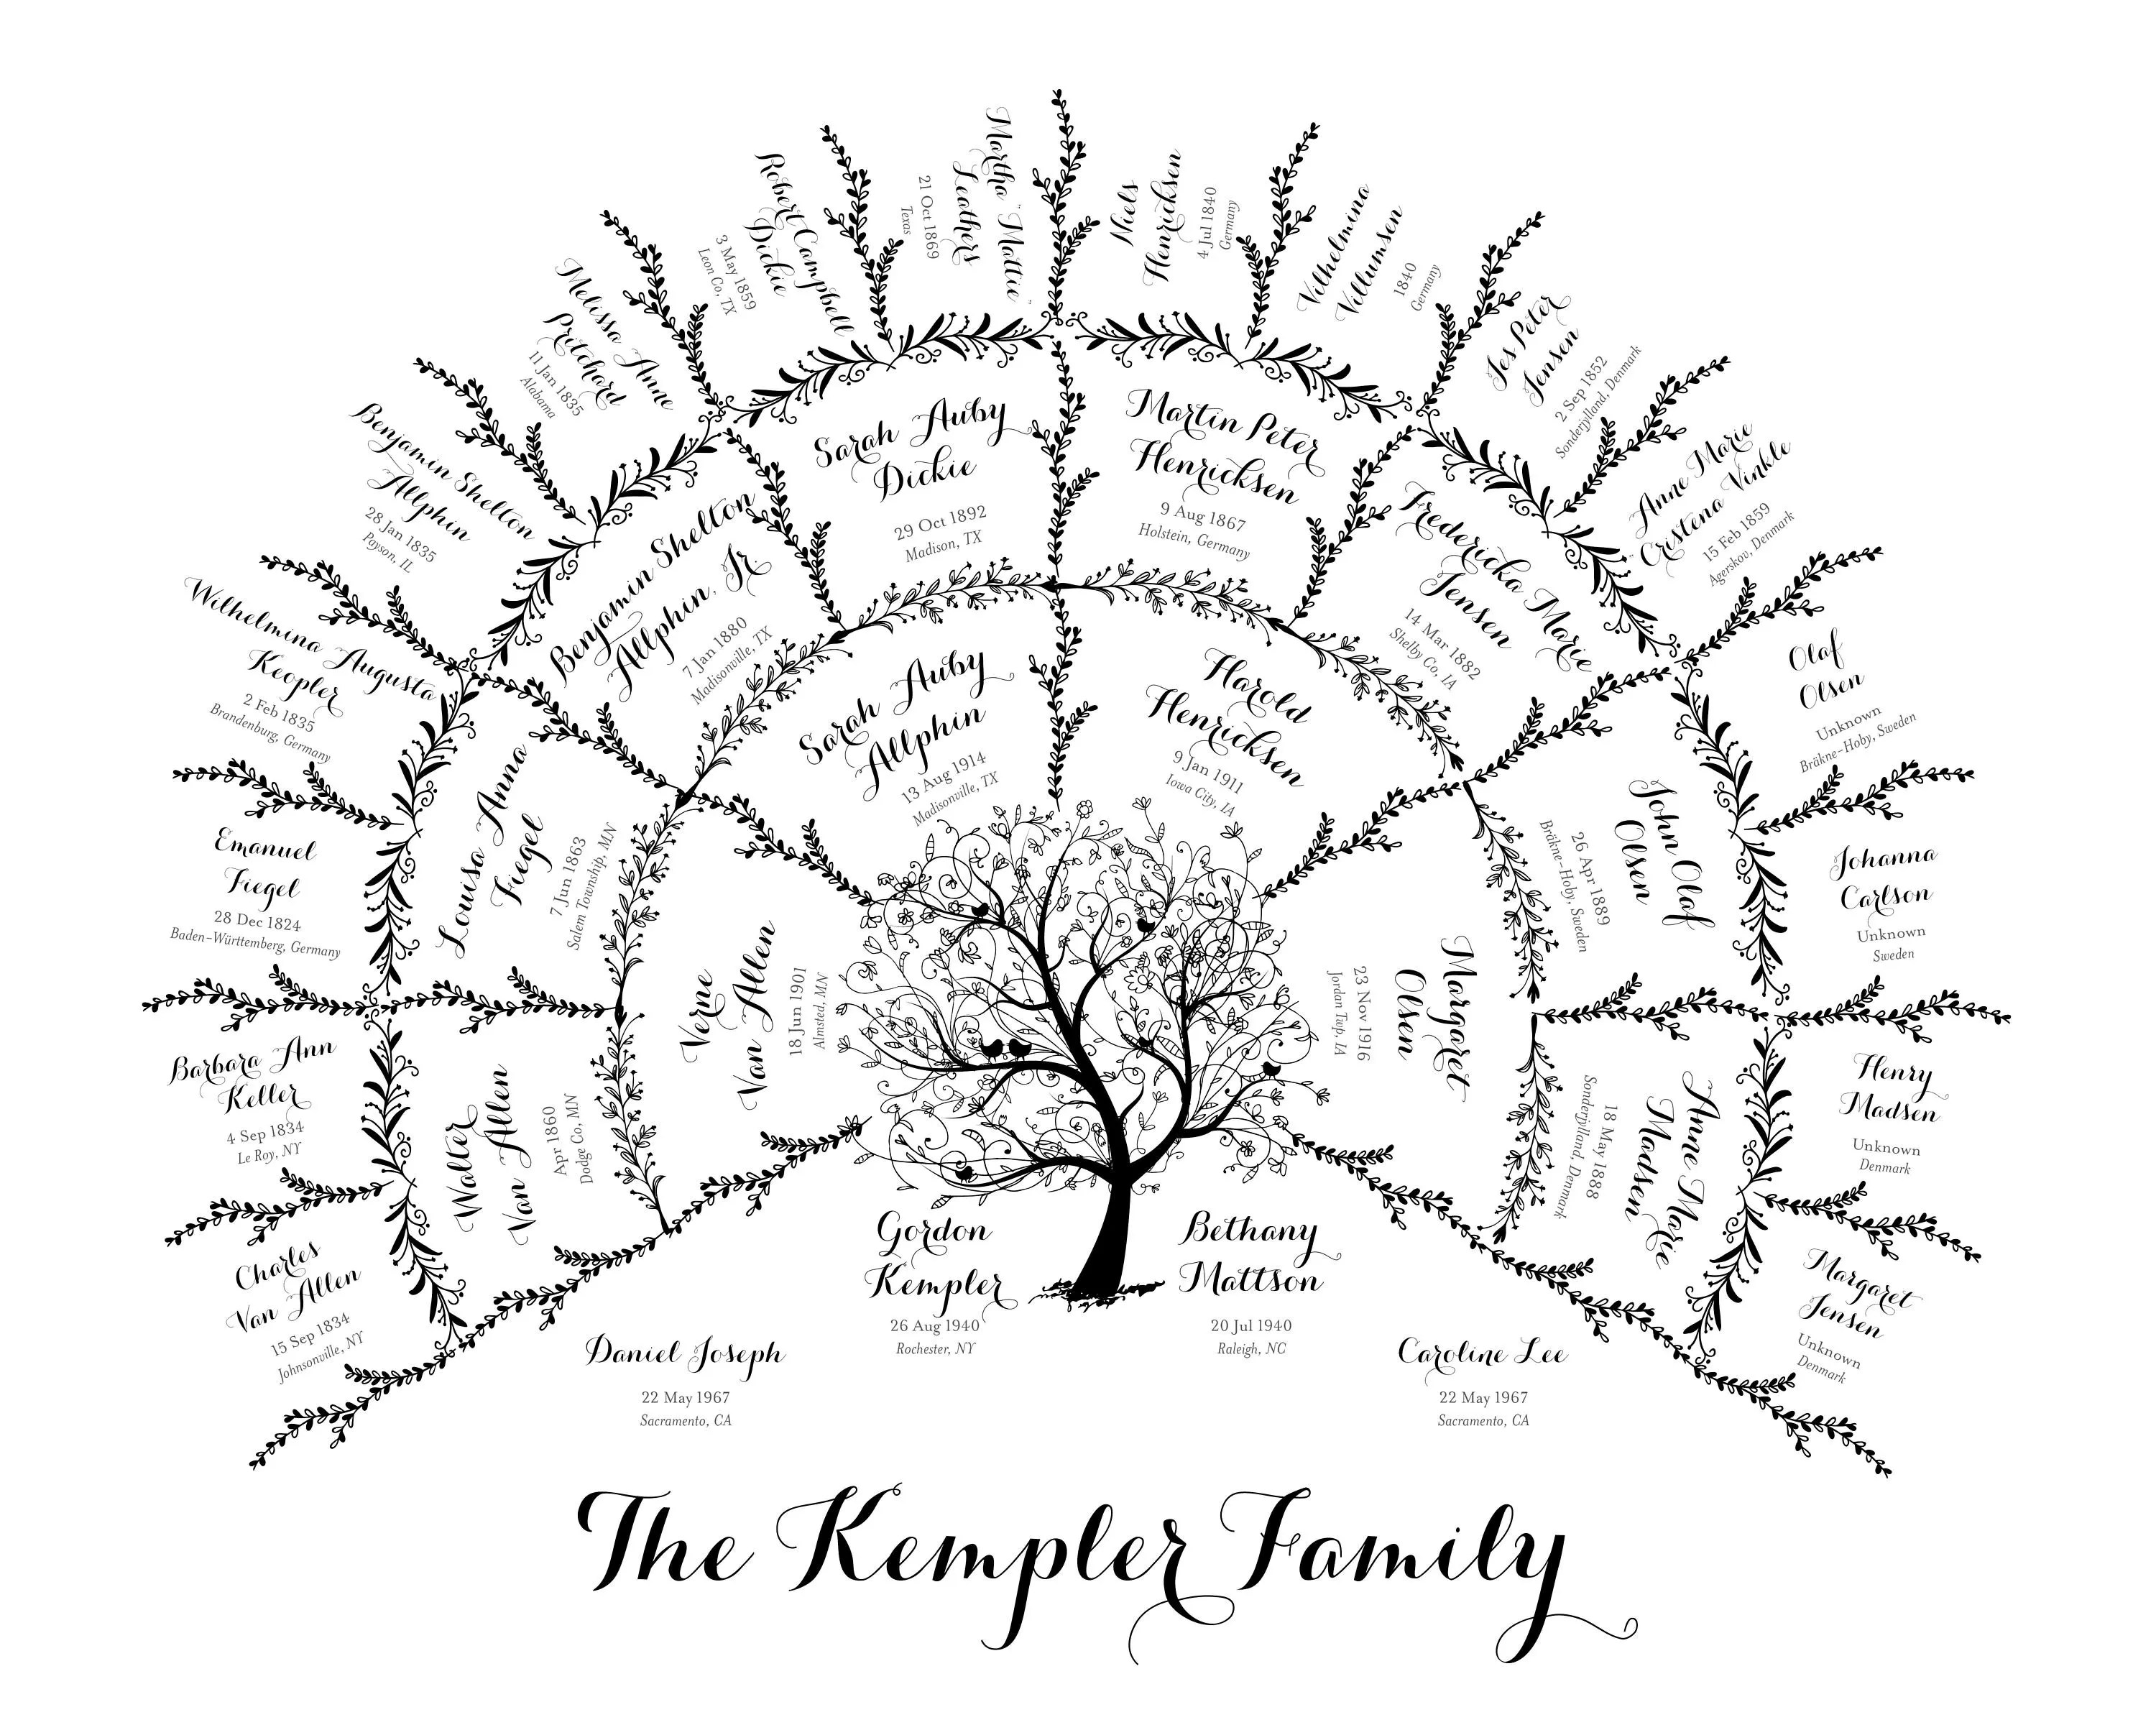 Family tree chart poster hand write in blanks for reunion